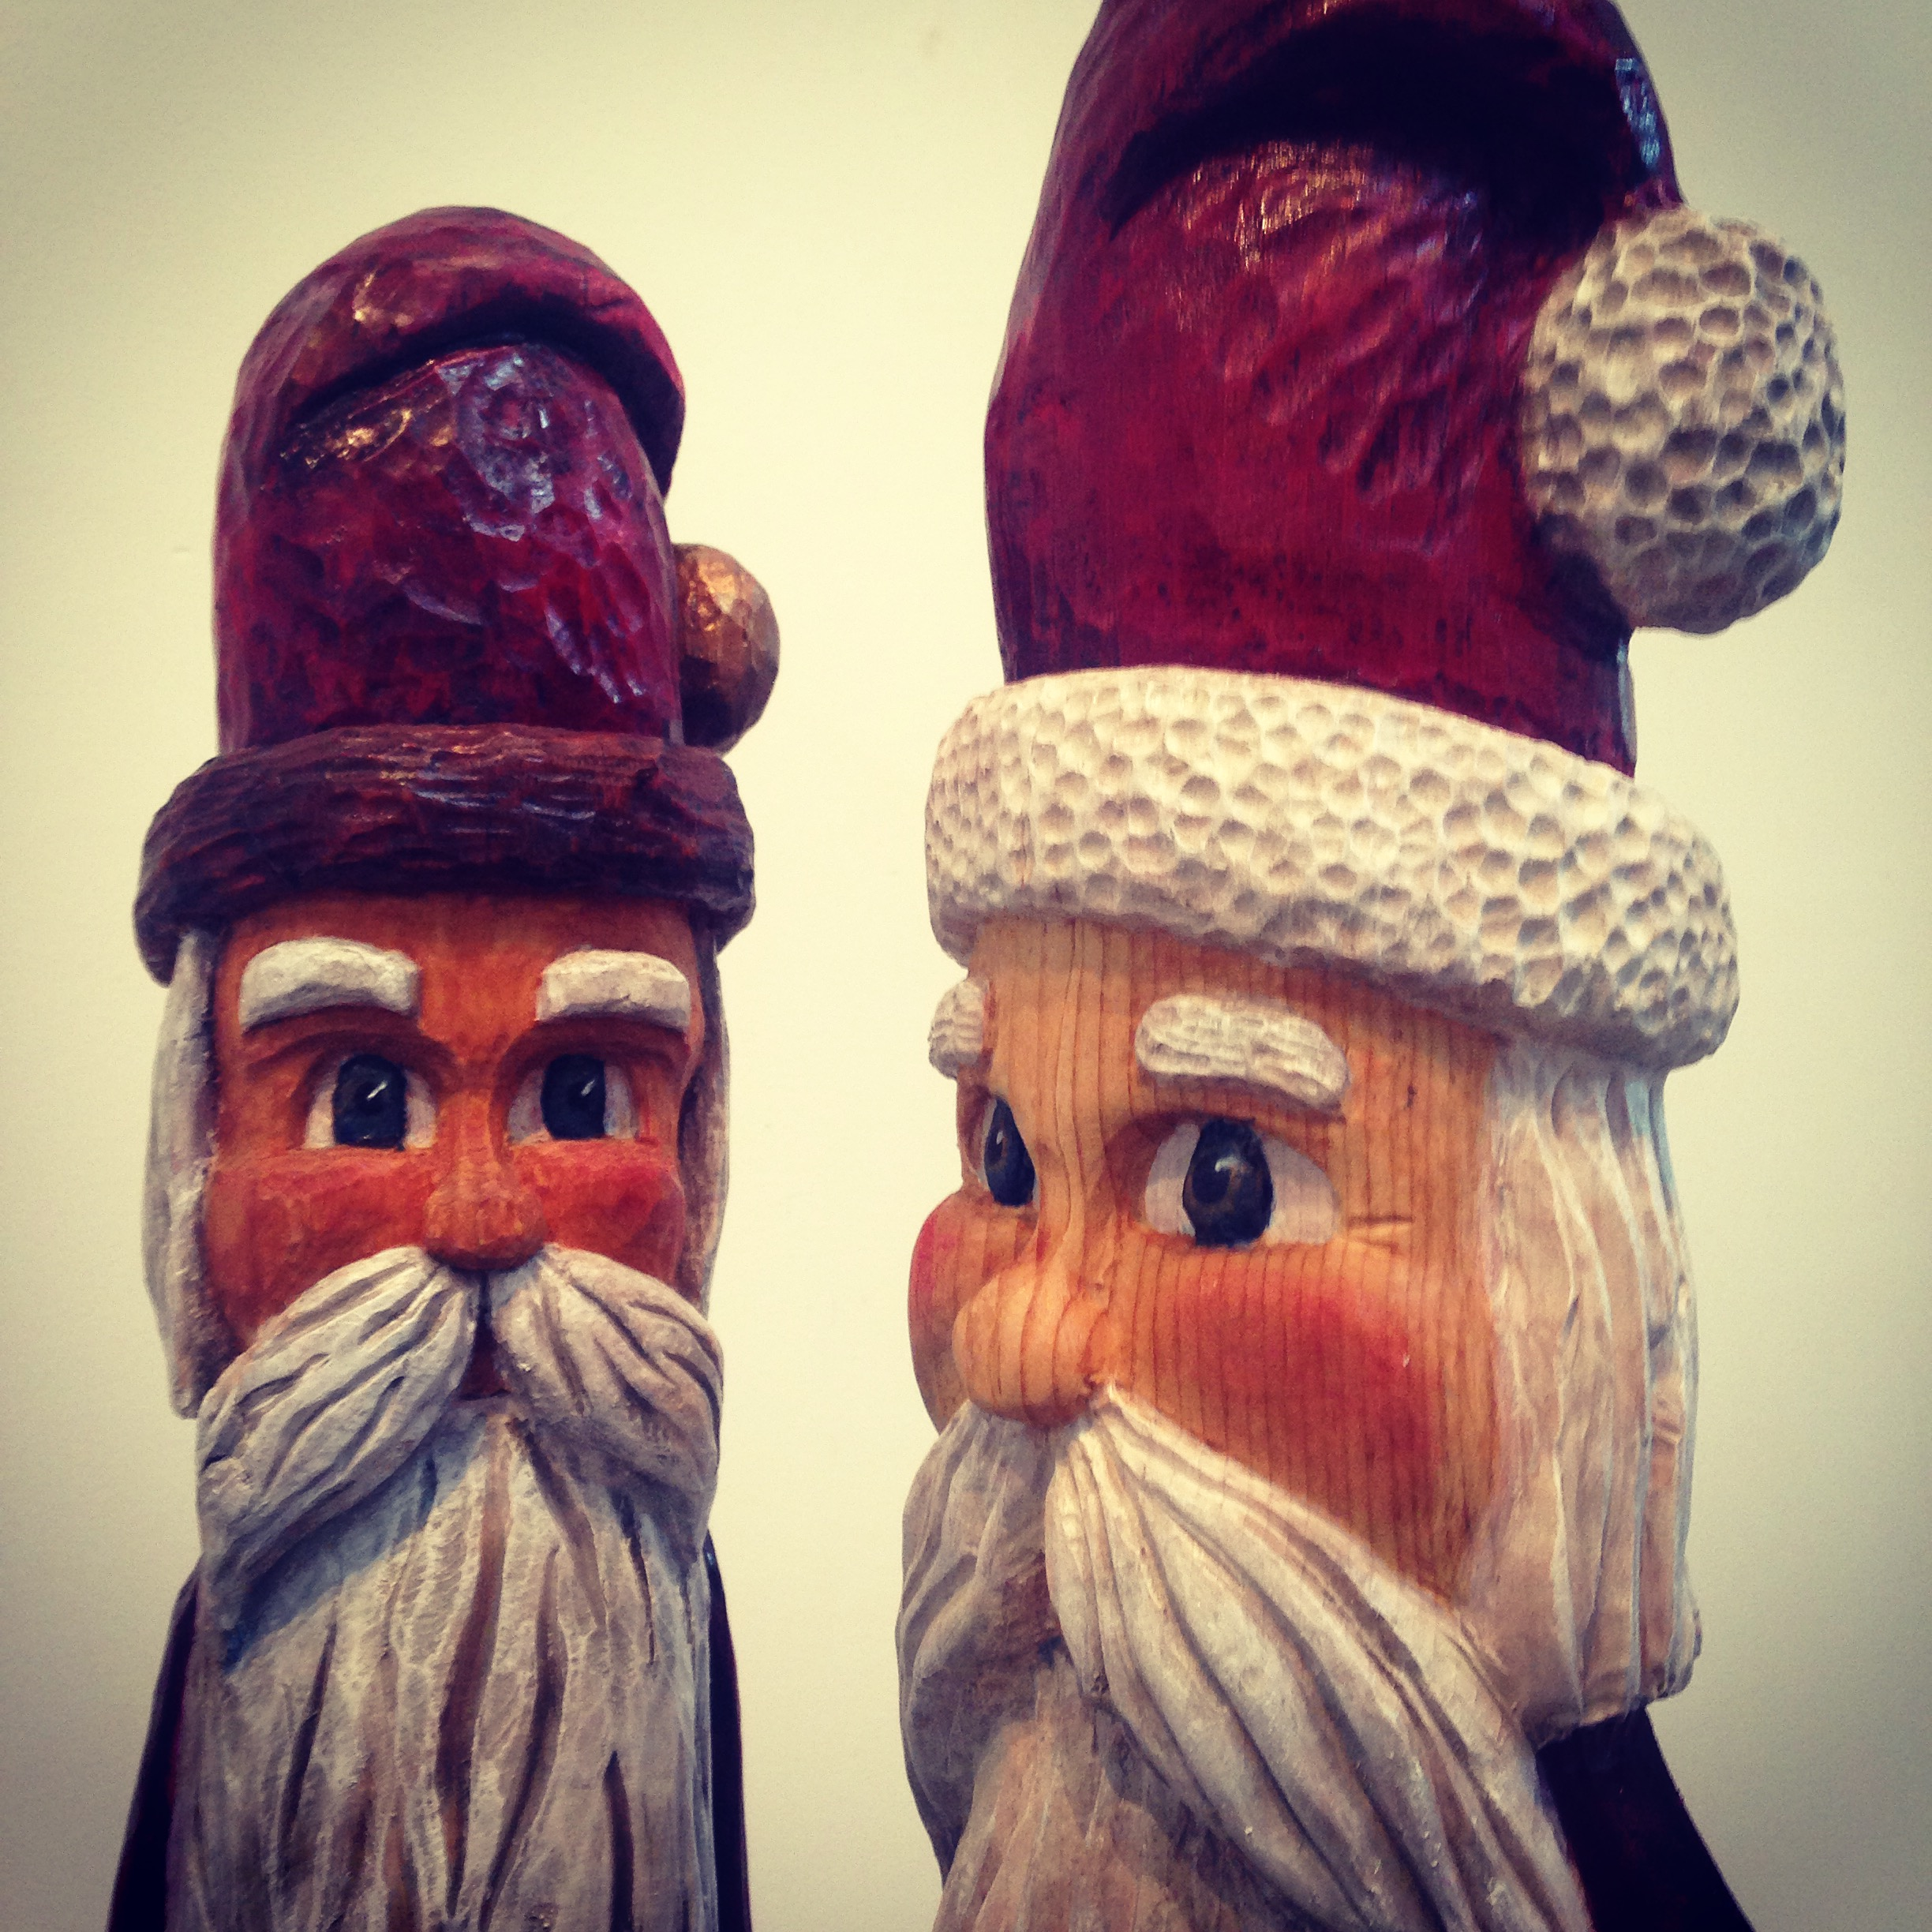 Carved Claus's for Christmas